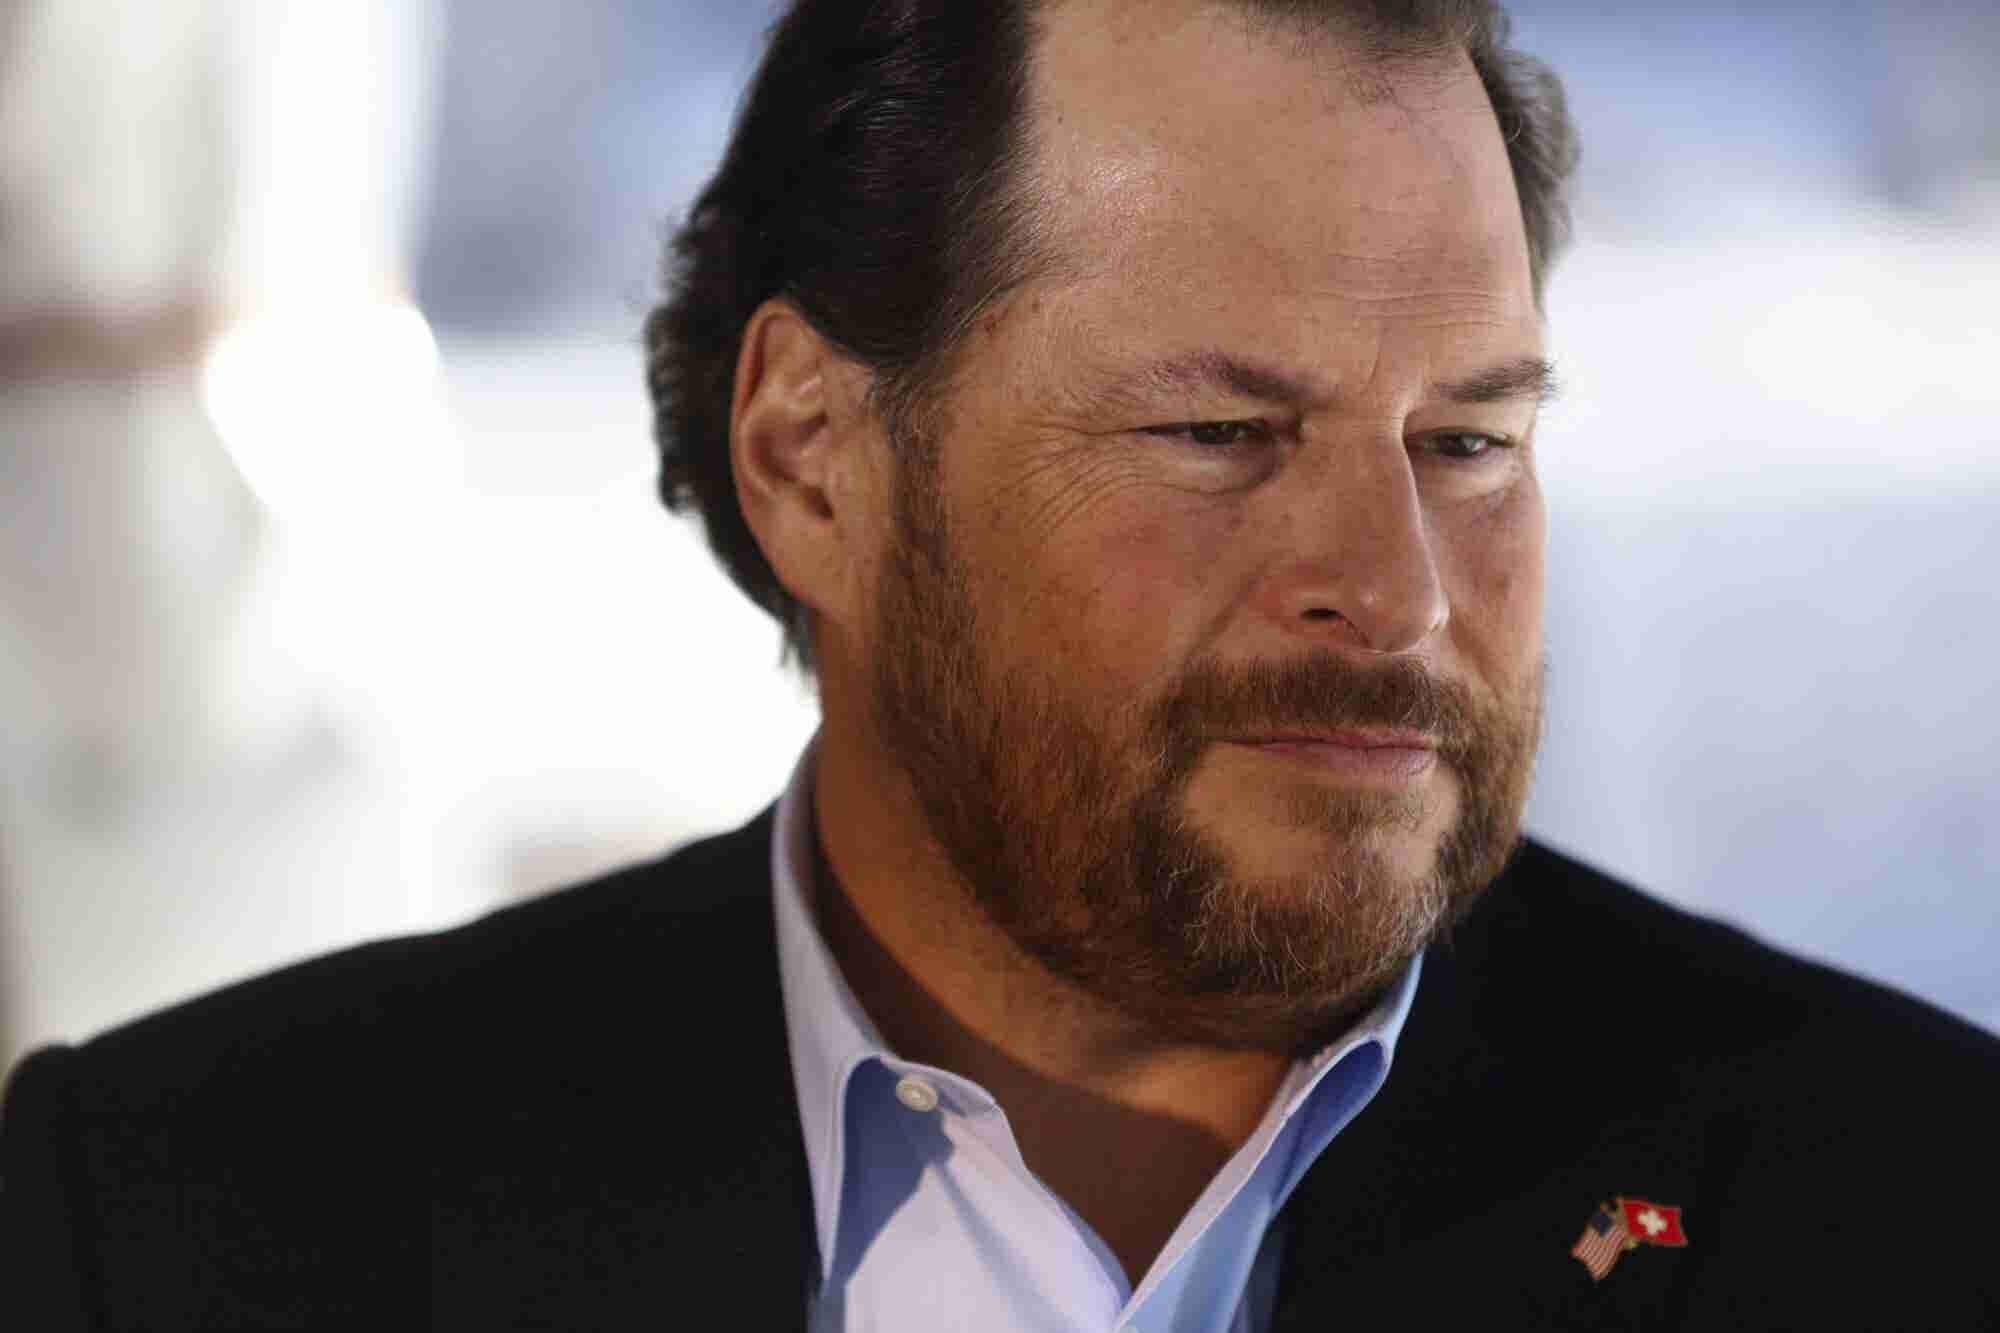 Marc Benioff Reached Millionaire Status by Age 25 -- and 9 Other Things to Know About the Co-Founder of Salesforce